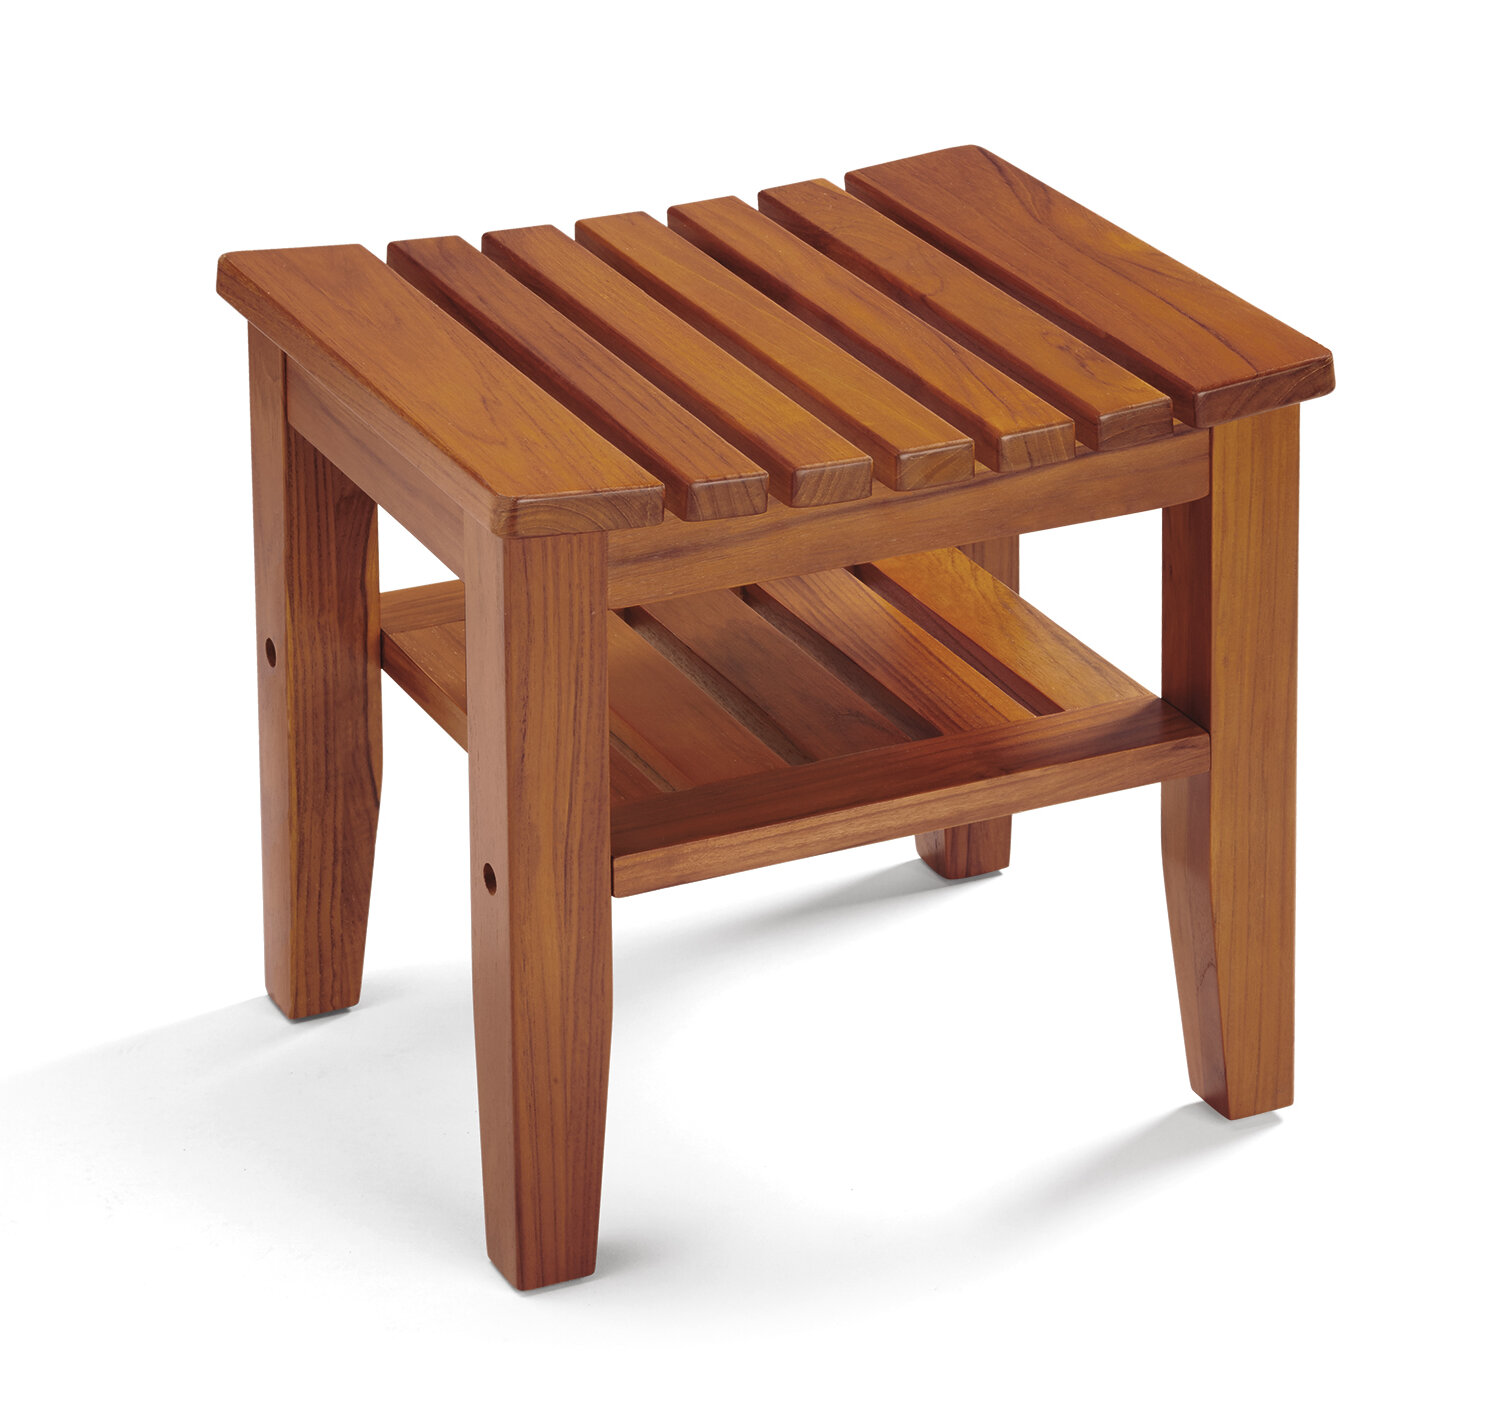 Conair Wooden Shower Seat | Wayfair